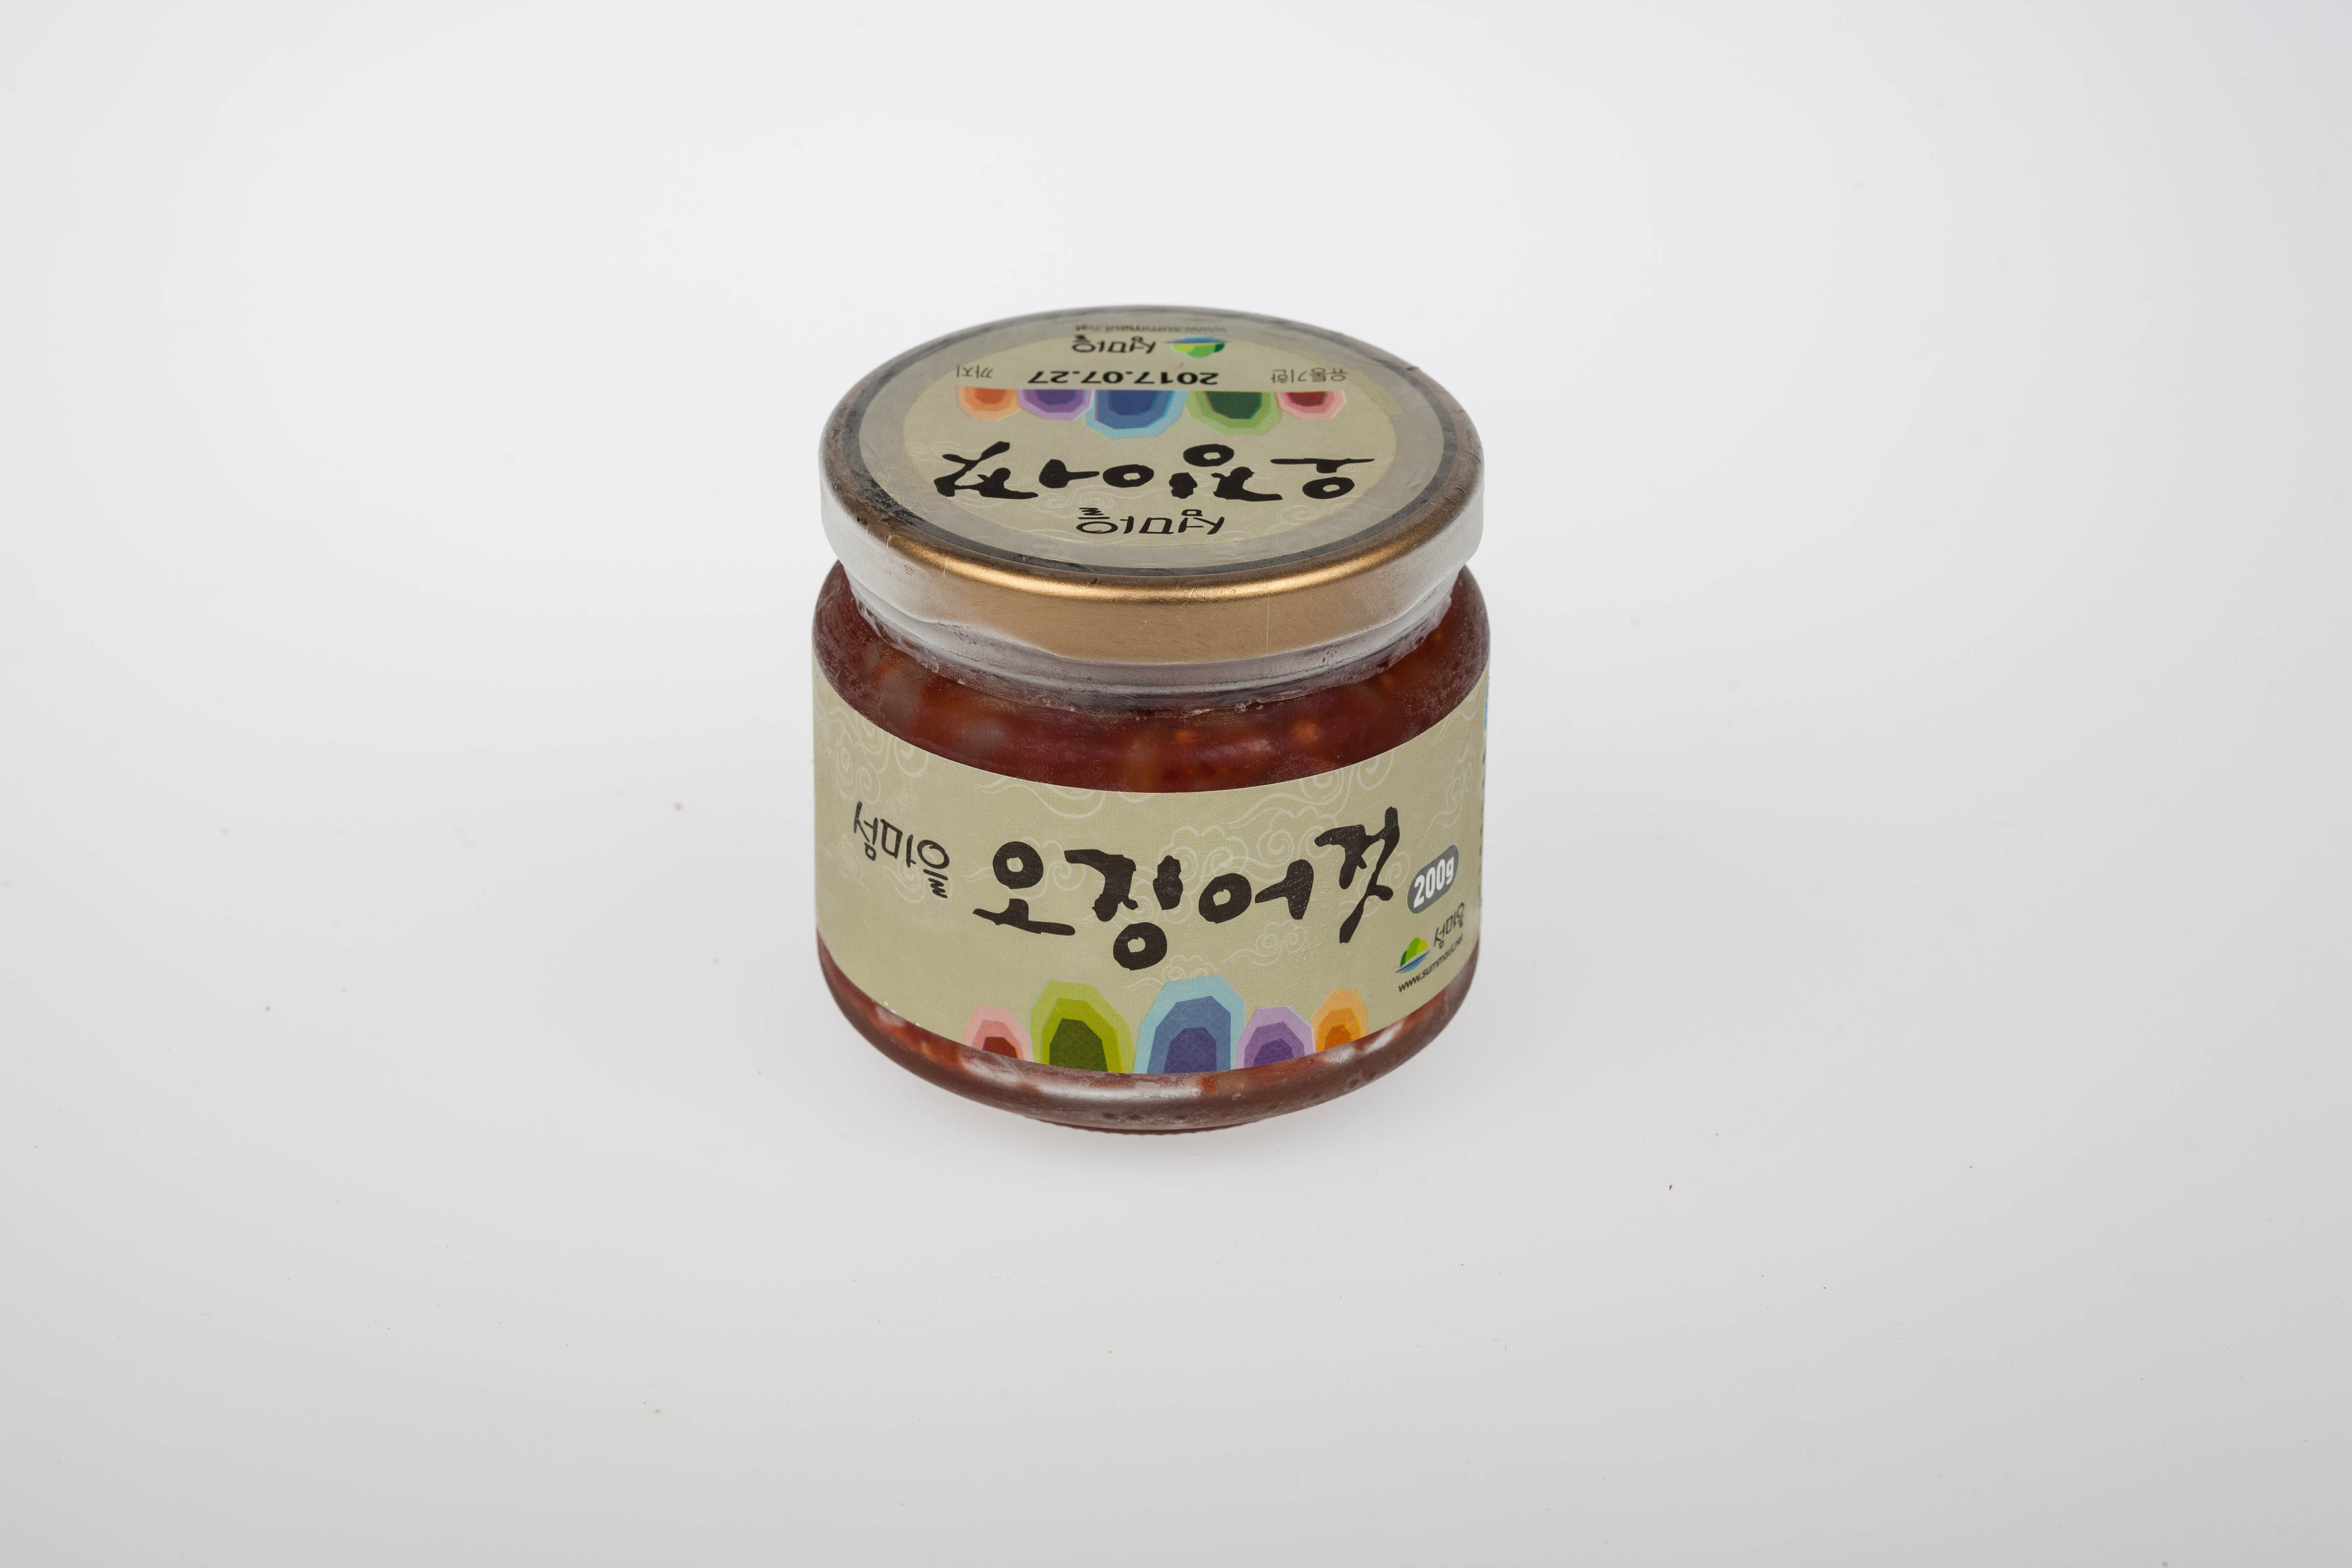 Ganwoldo Spicy Pickled Squid from Seosan Korea